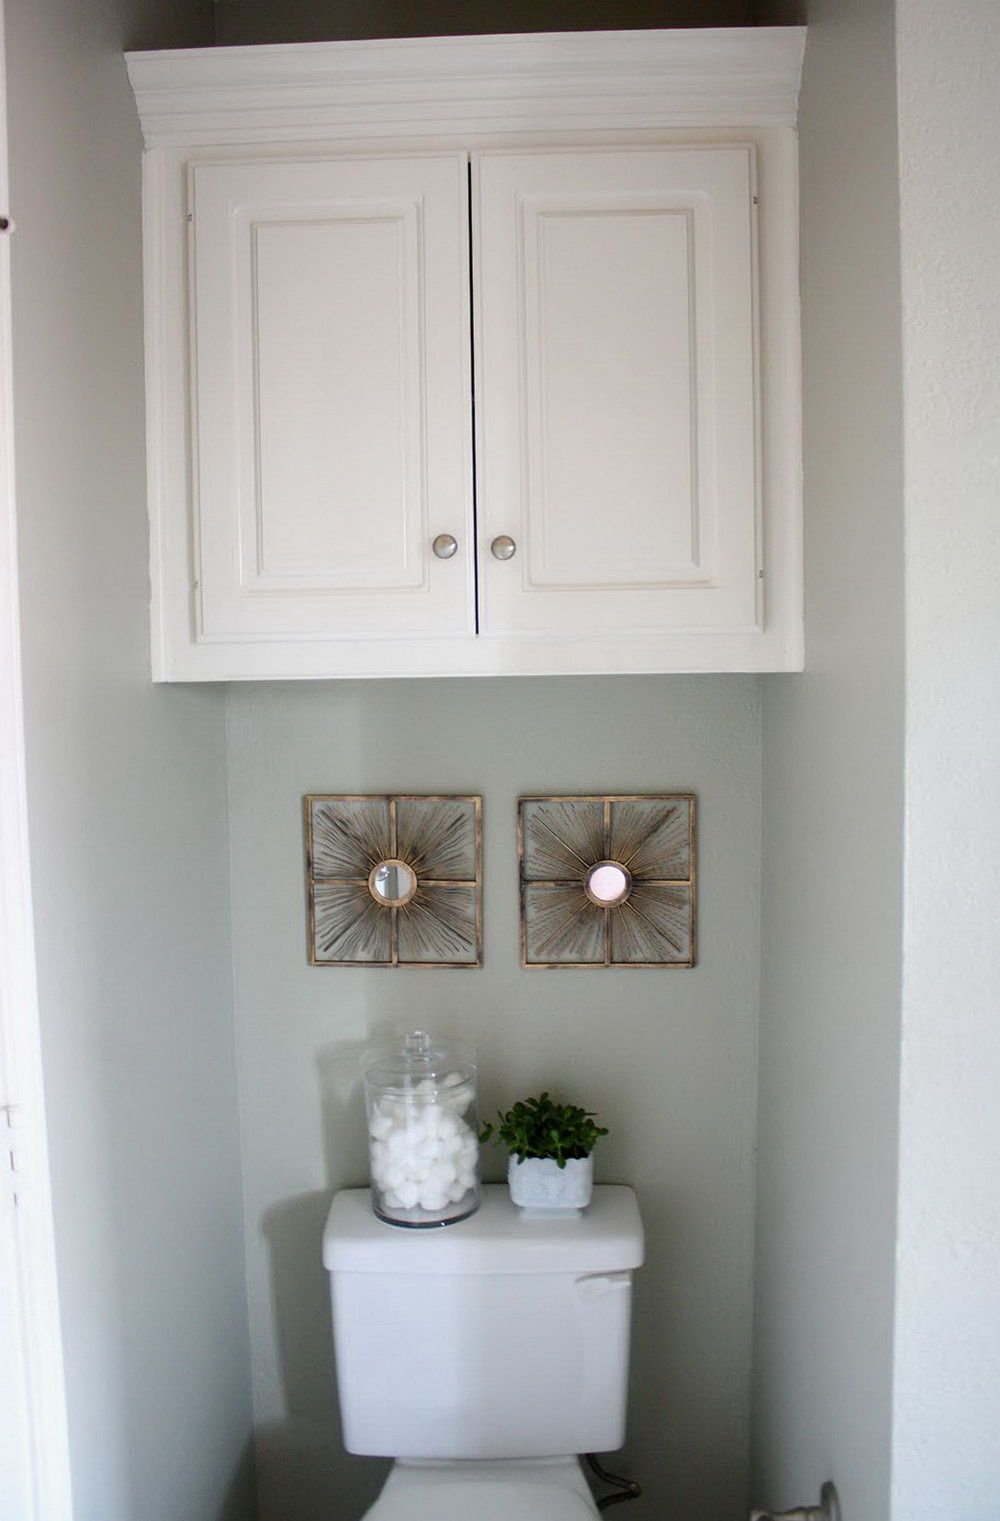 Bathroom Storage Cabinets Over Toilet White Home Design with size 1000 X 1521